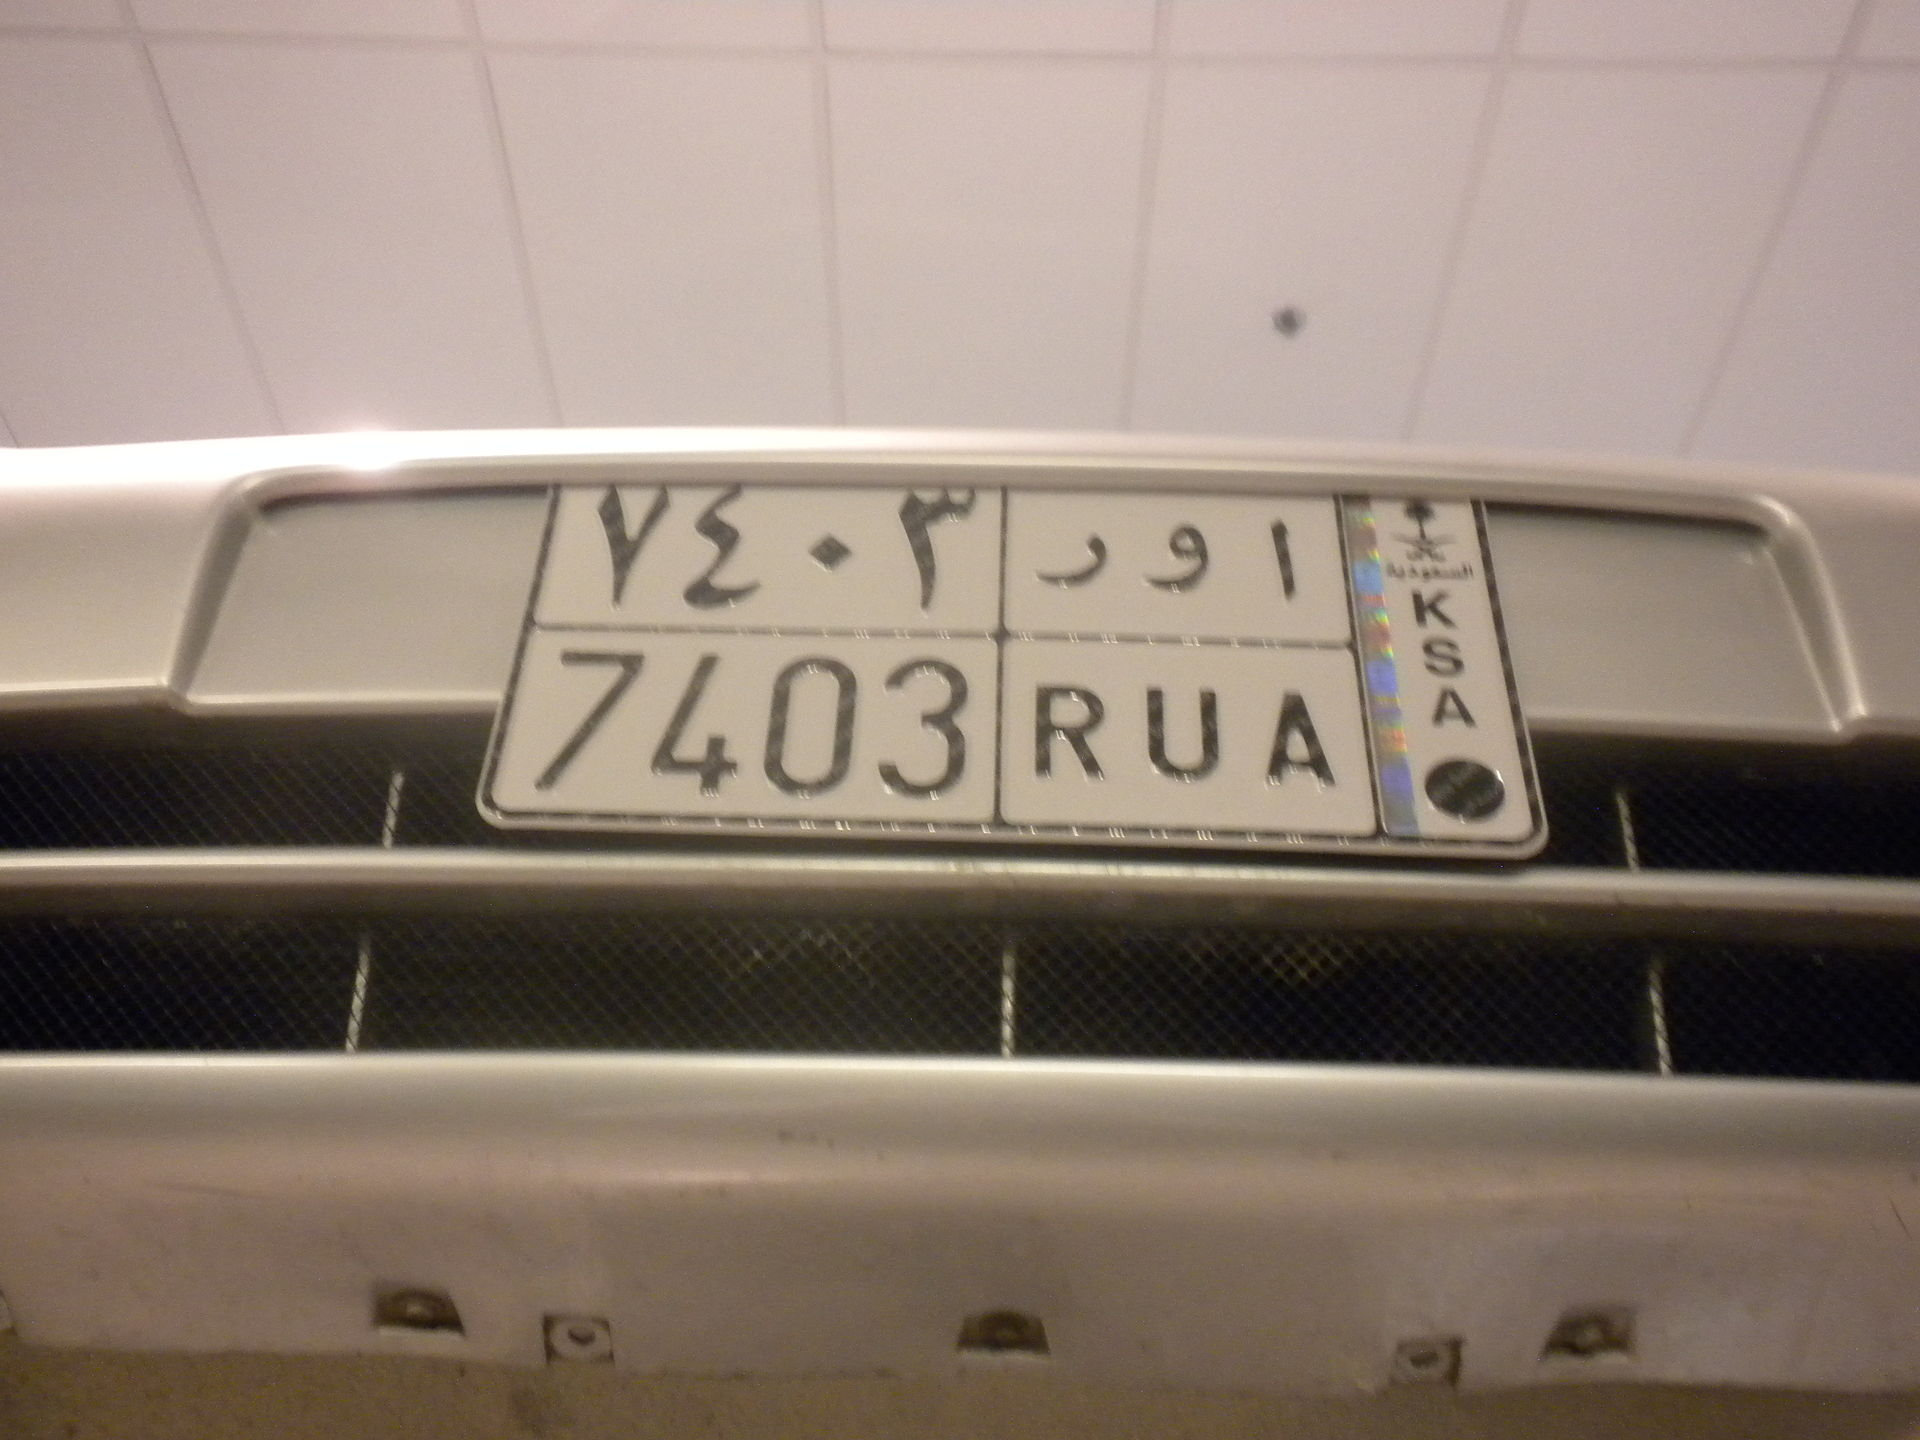 License Plate Verification On Private Property